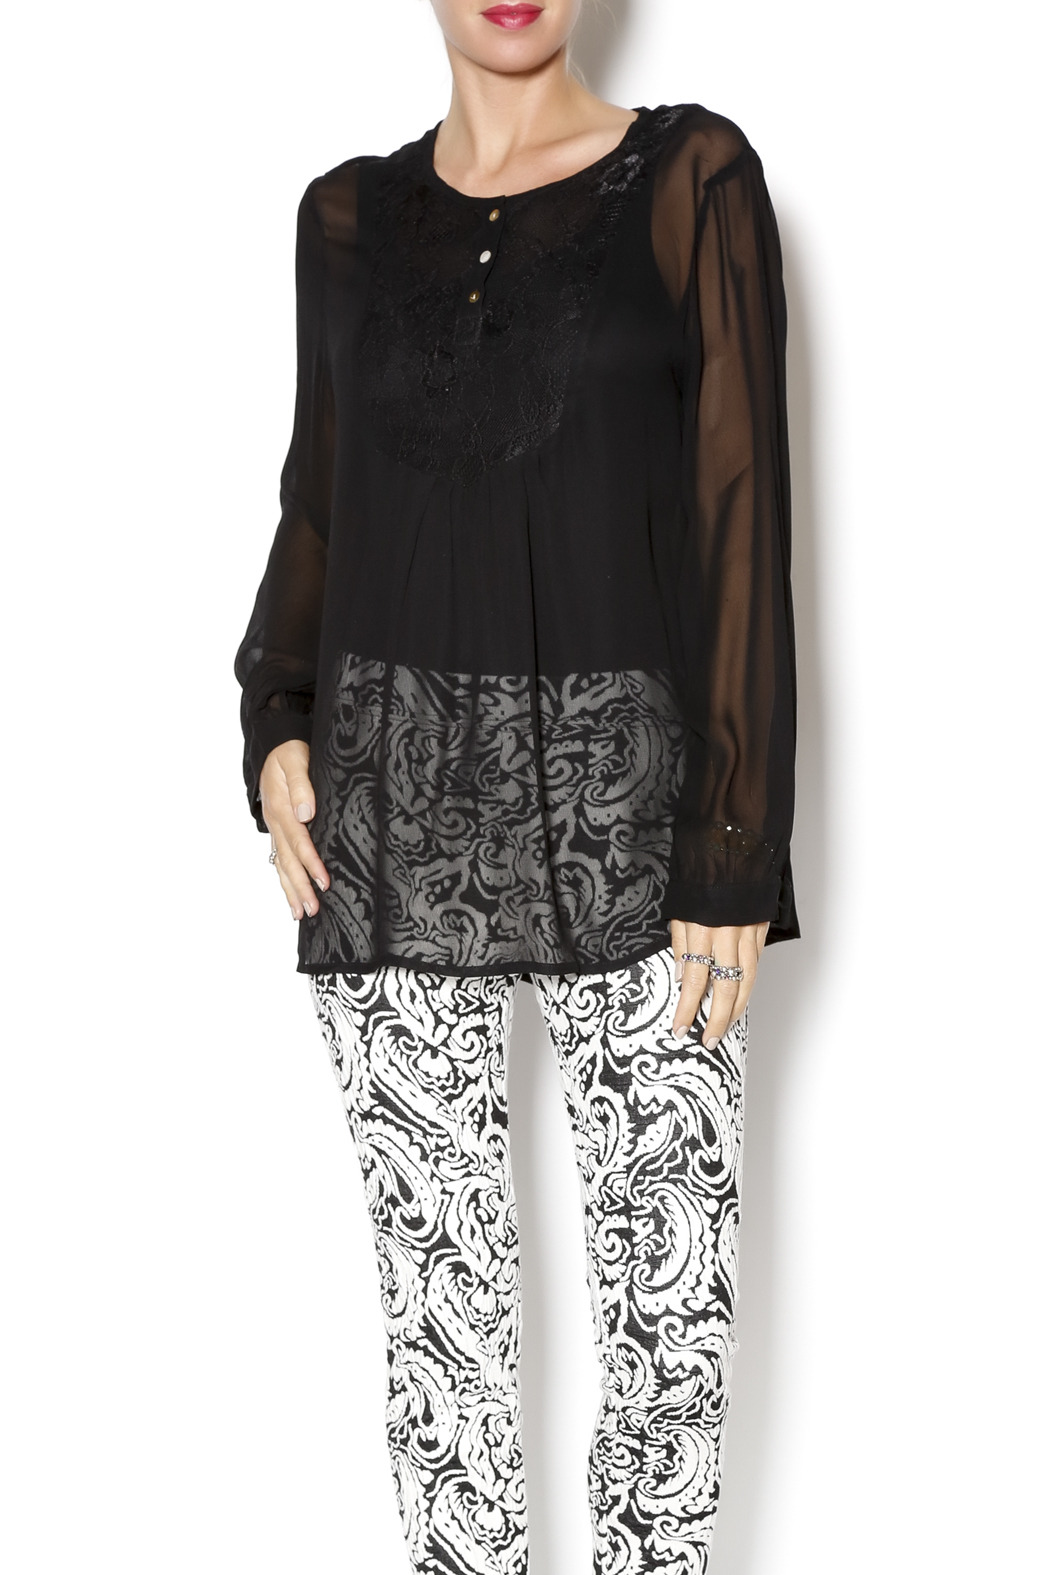 casual studio Black Sheer Blouse - Front Cropped Image